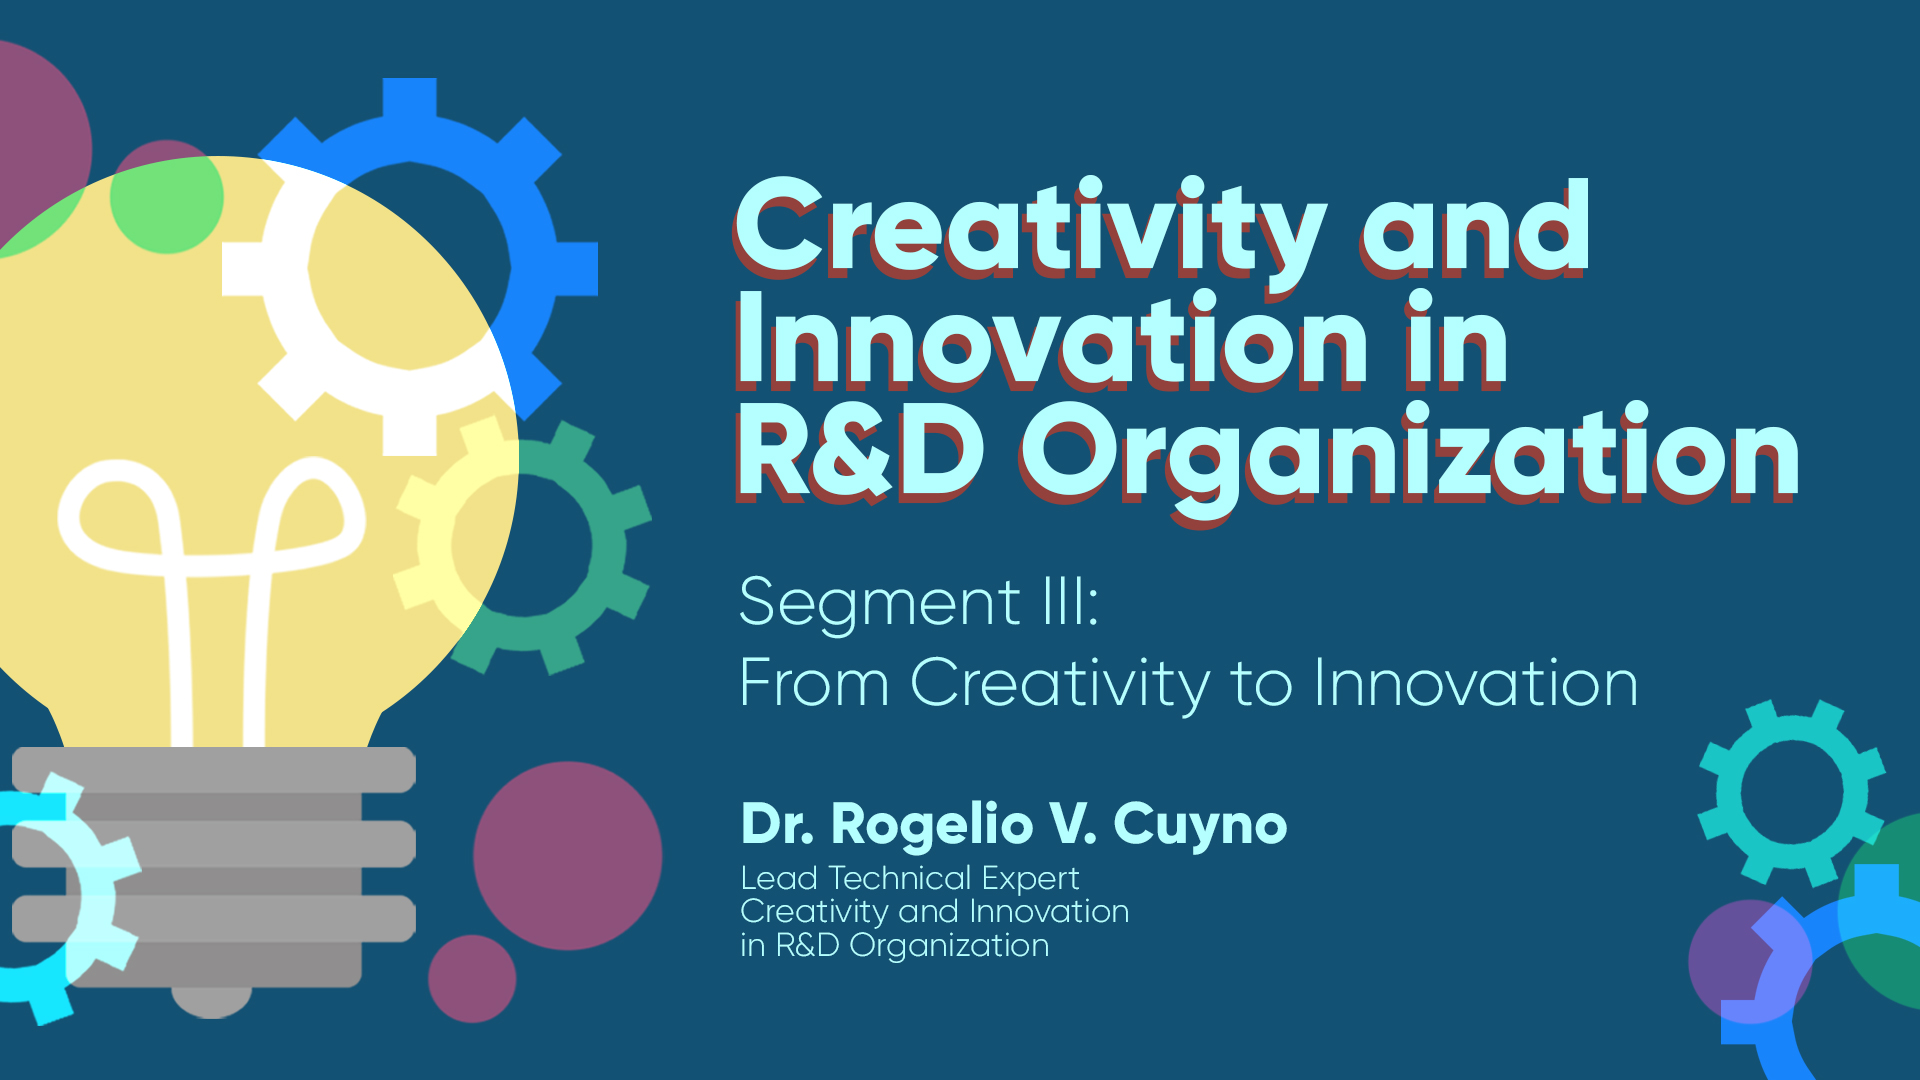 Creativity and Innovation in R&D Organization – Segment III: From Creativity to Innovation | Dr. Rogelio V. Cuyno